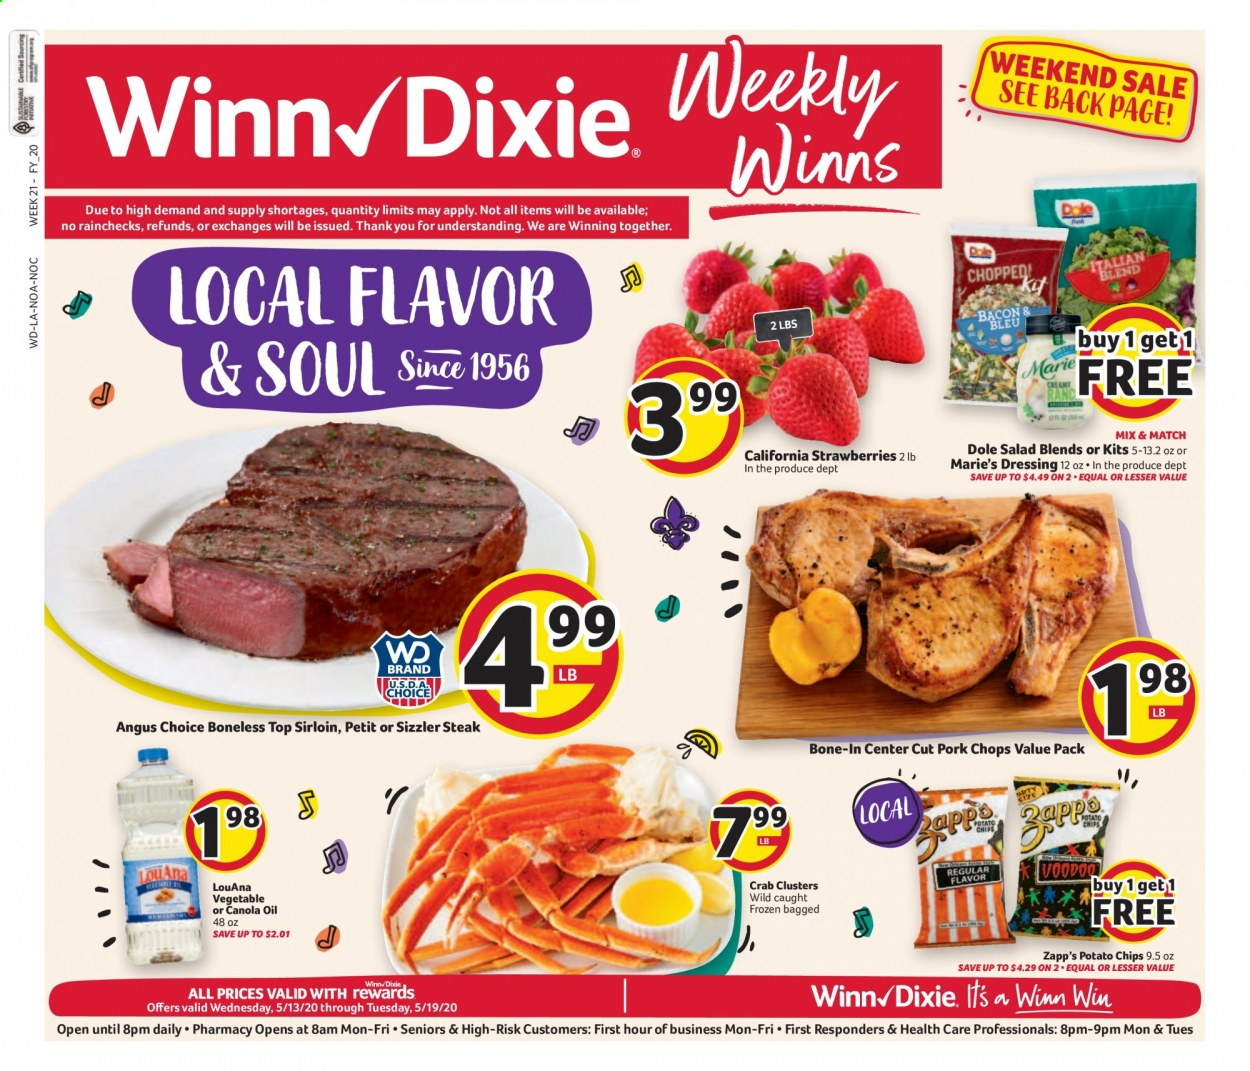 Winn Dixie Flyer - 05.13.2020 - 05.19.2020 - Sales products - Dole, strawberries, steak, pork chops, pork meat, crab, potato chips, chips, dressing, canola oil. Page 1.